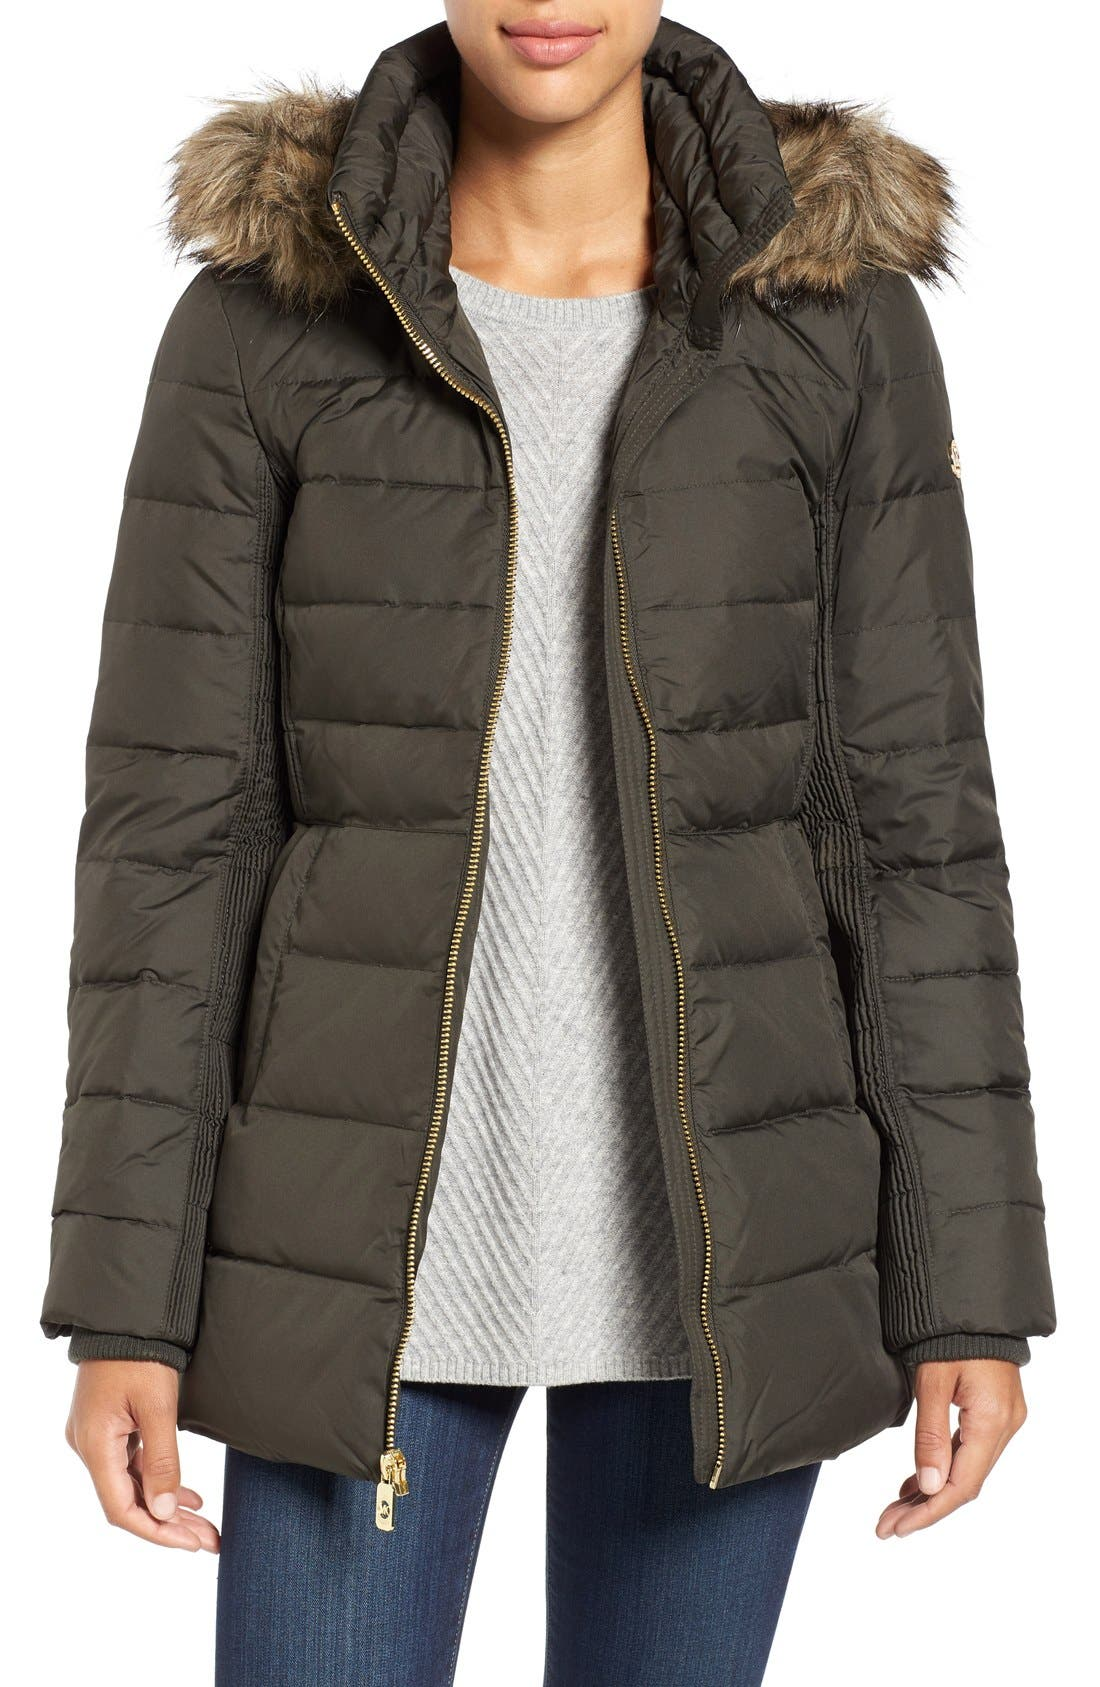 Alternate Image 1 Selected - MICHAEL Michael Kors Hooded Down & Feather Fill Coat with Faux Fur Trim